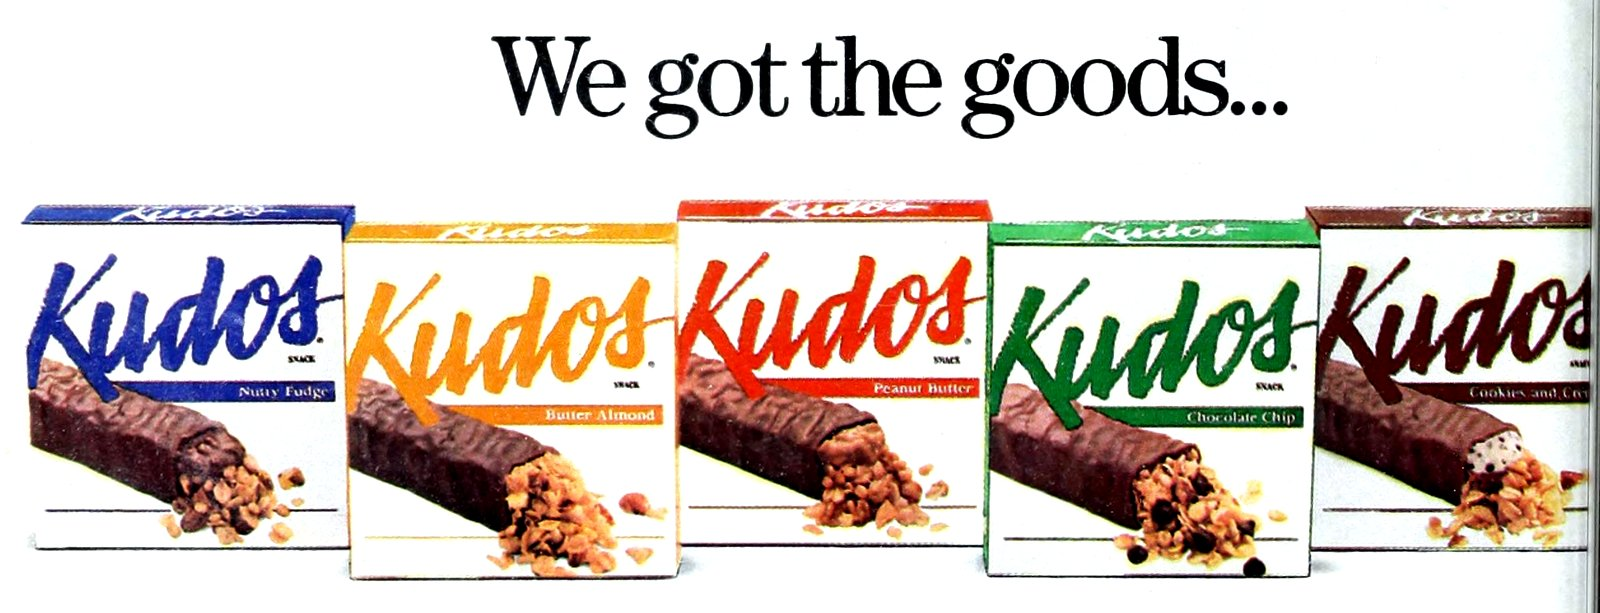 Vintage chocolate-covered Kudos granola snack bar flavors in 1990 (1)